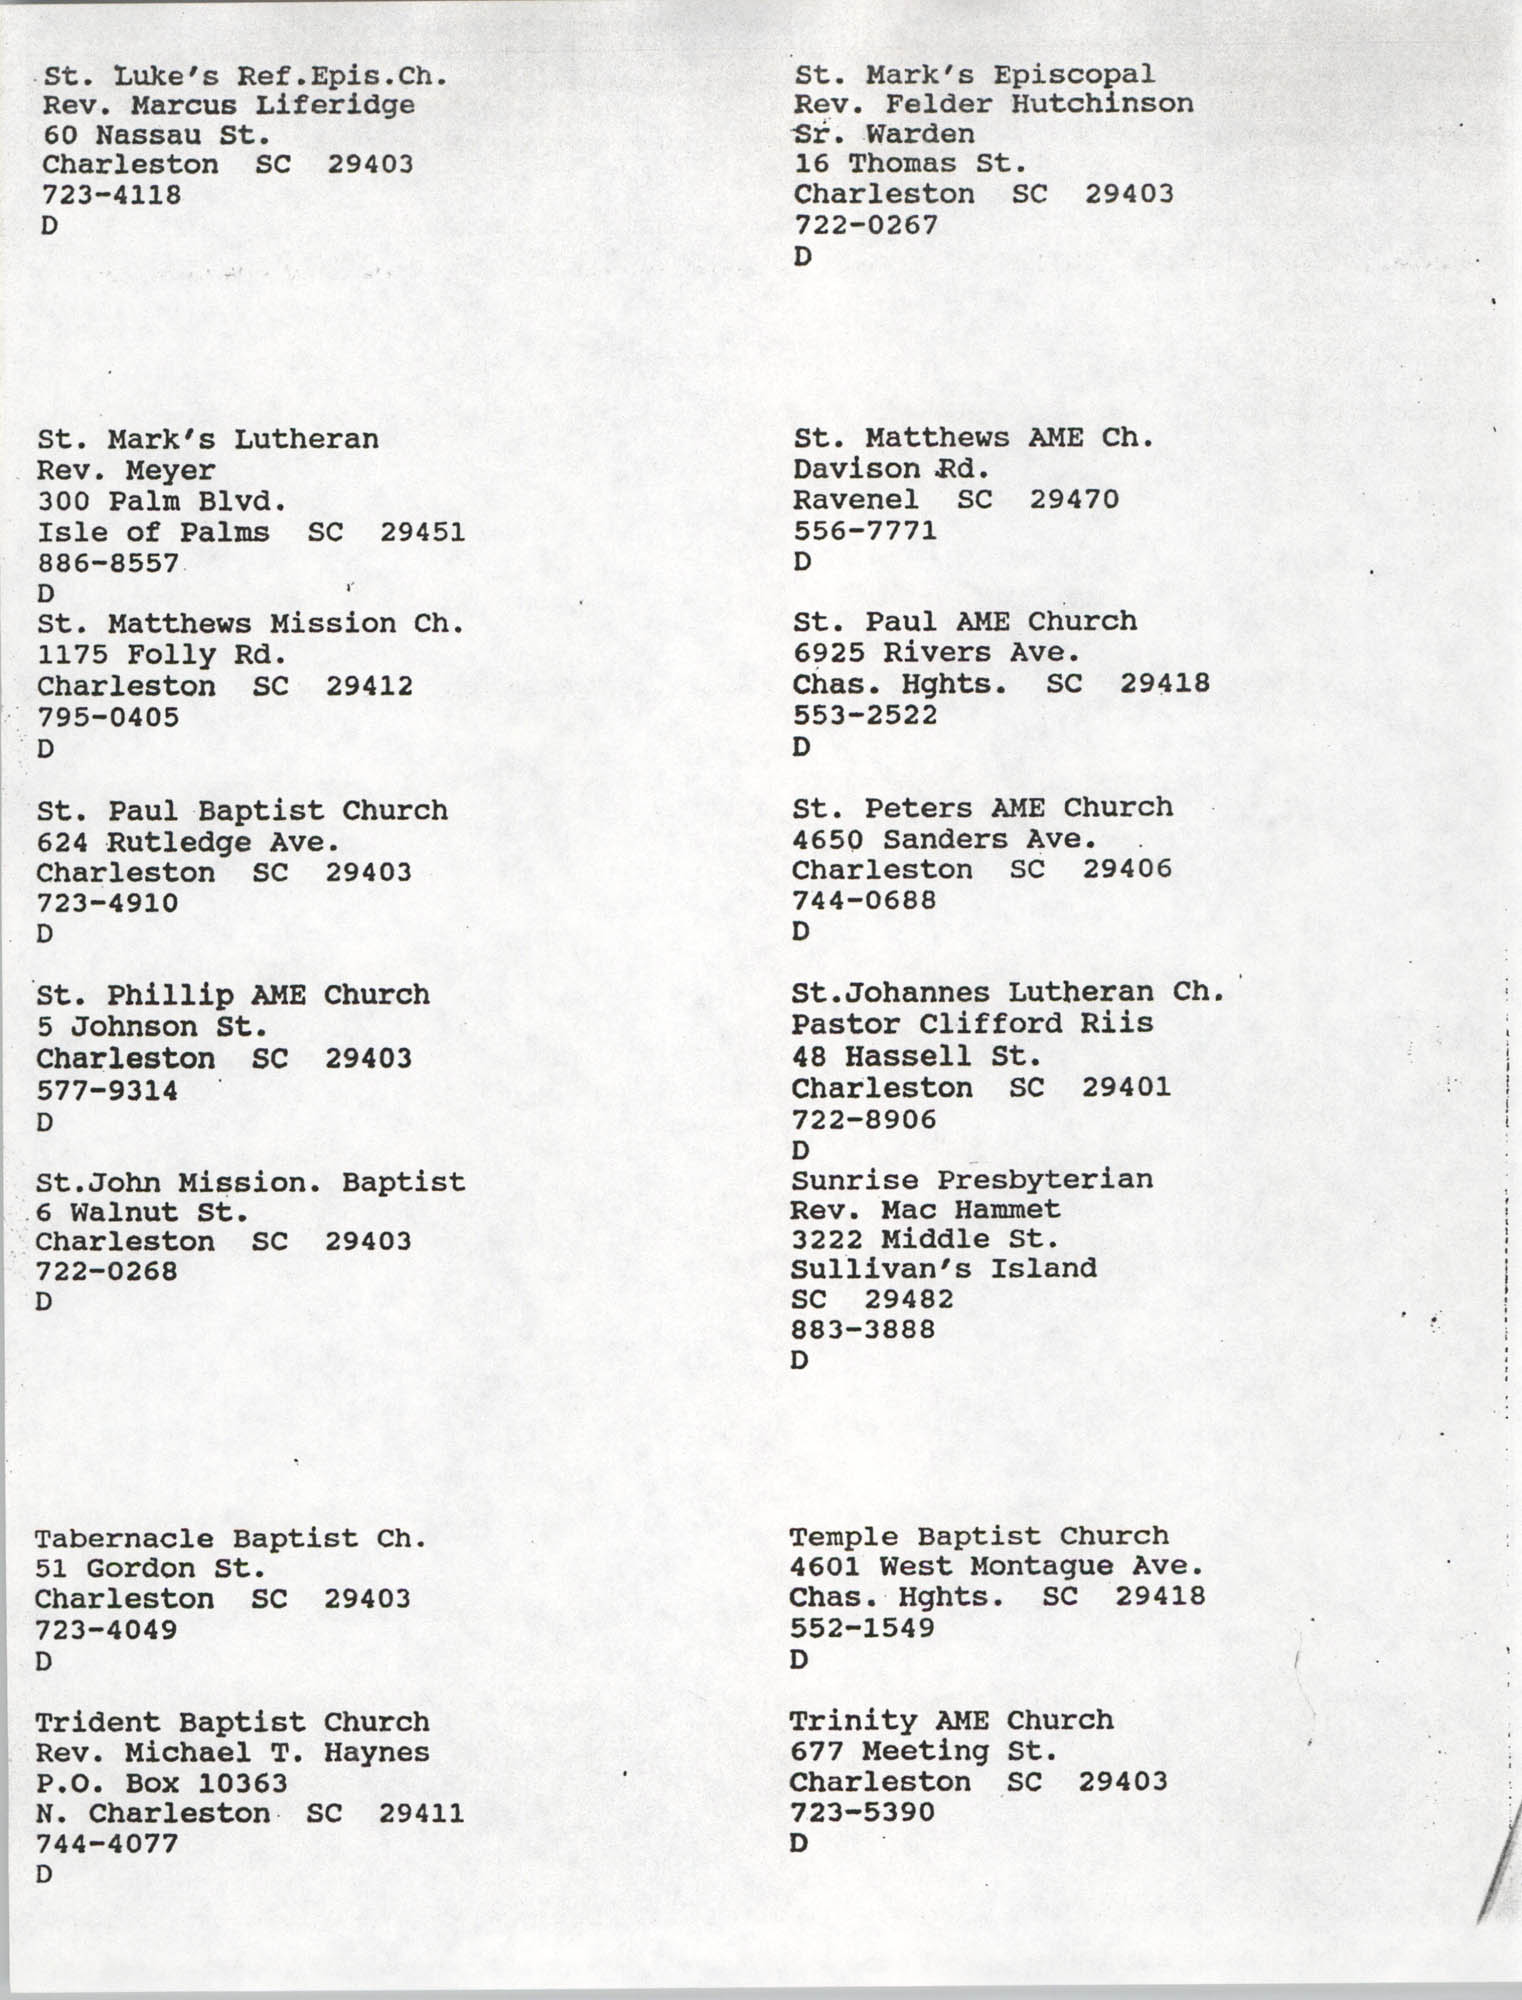 Church Contact List, Charleston Chapter of the NAACP, Page 24